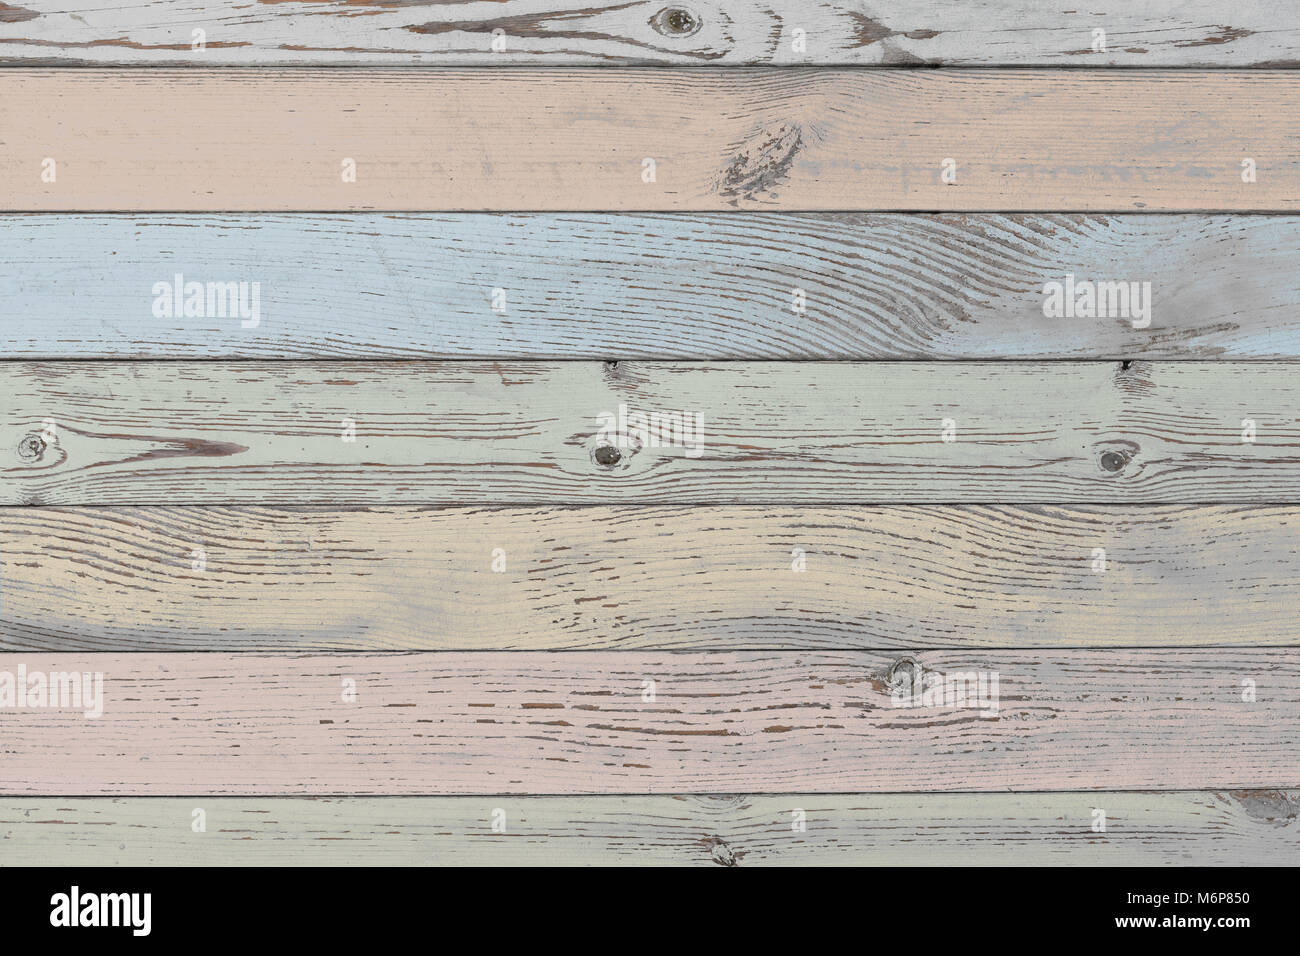 wood planks background or texture with pastel color planks - Stock Image